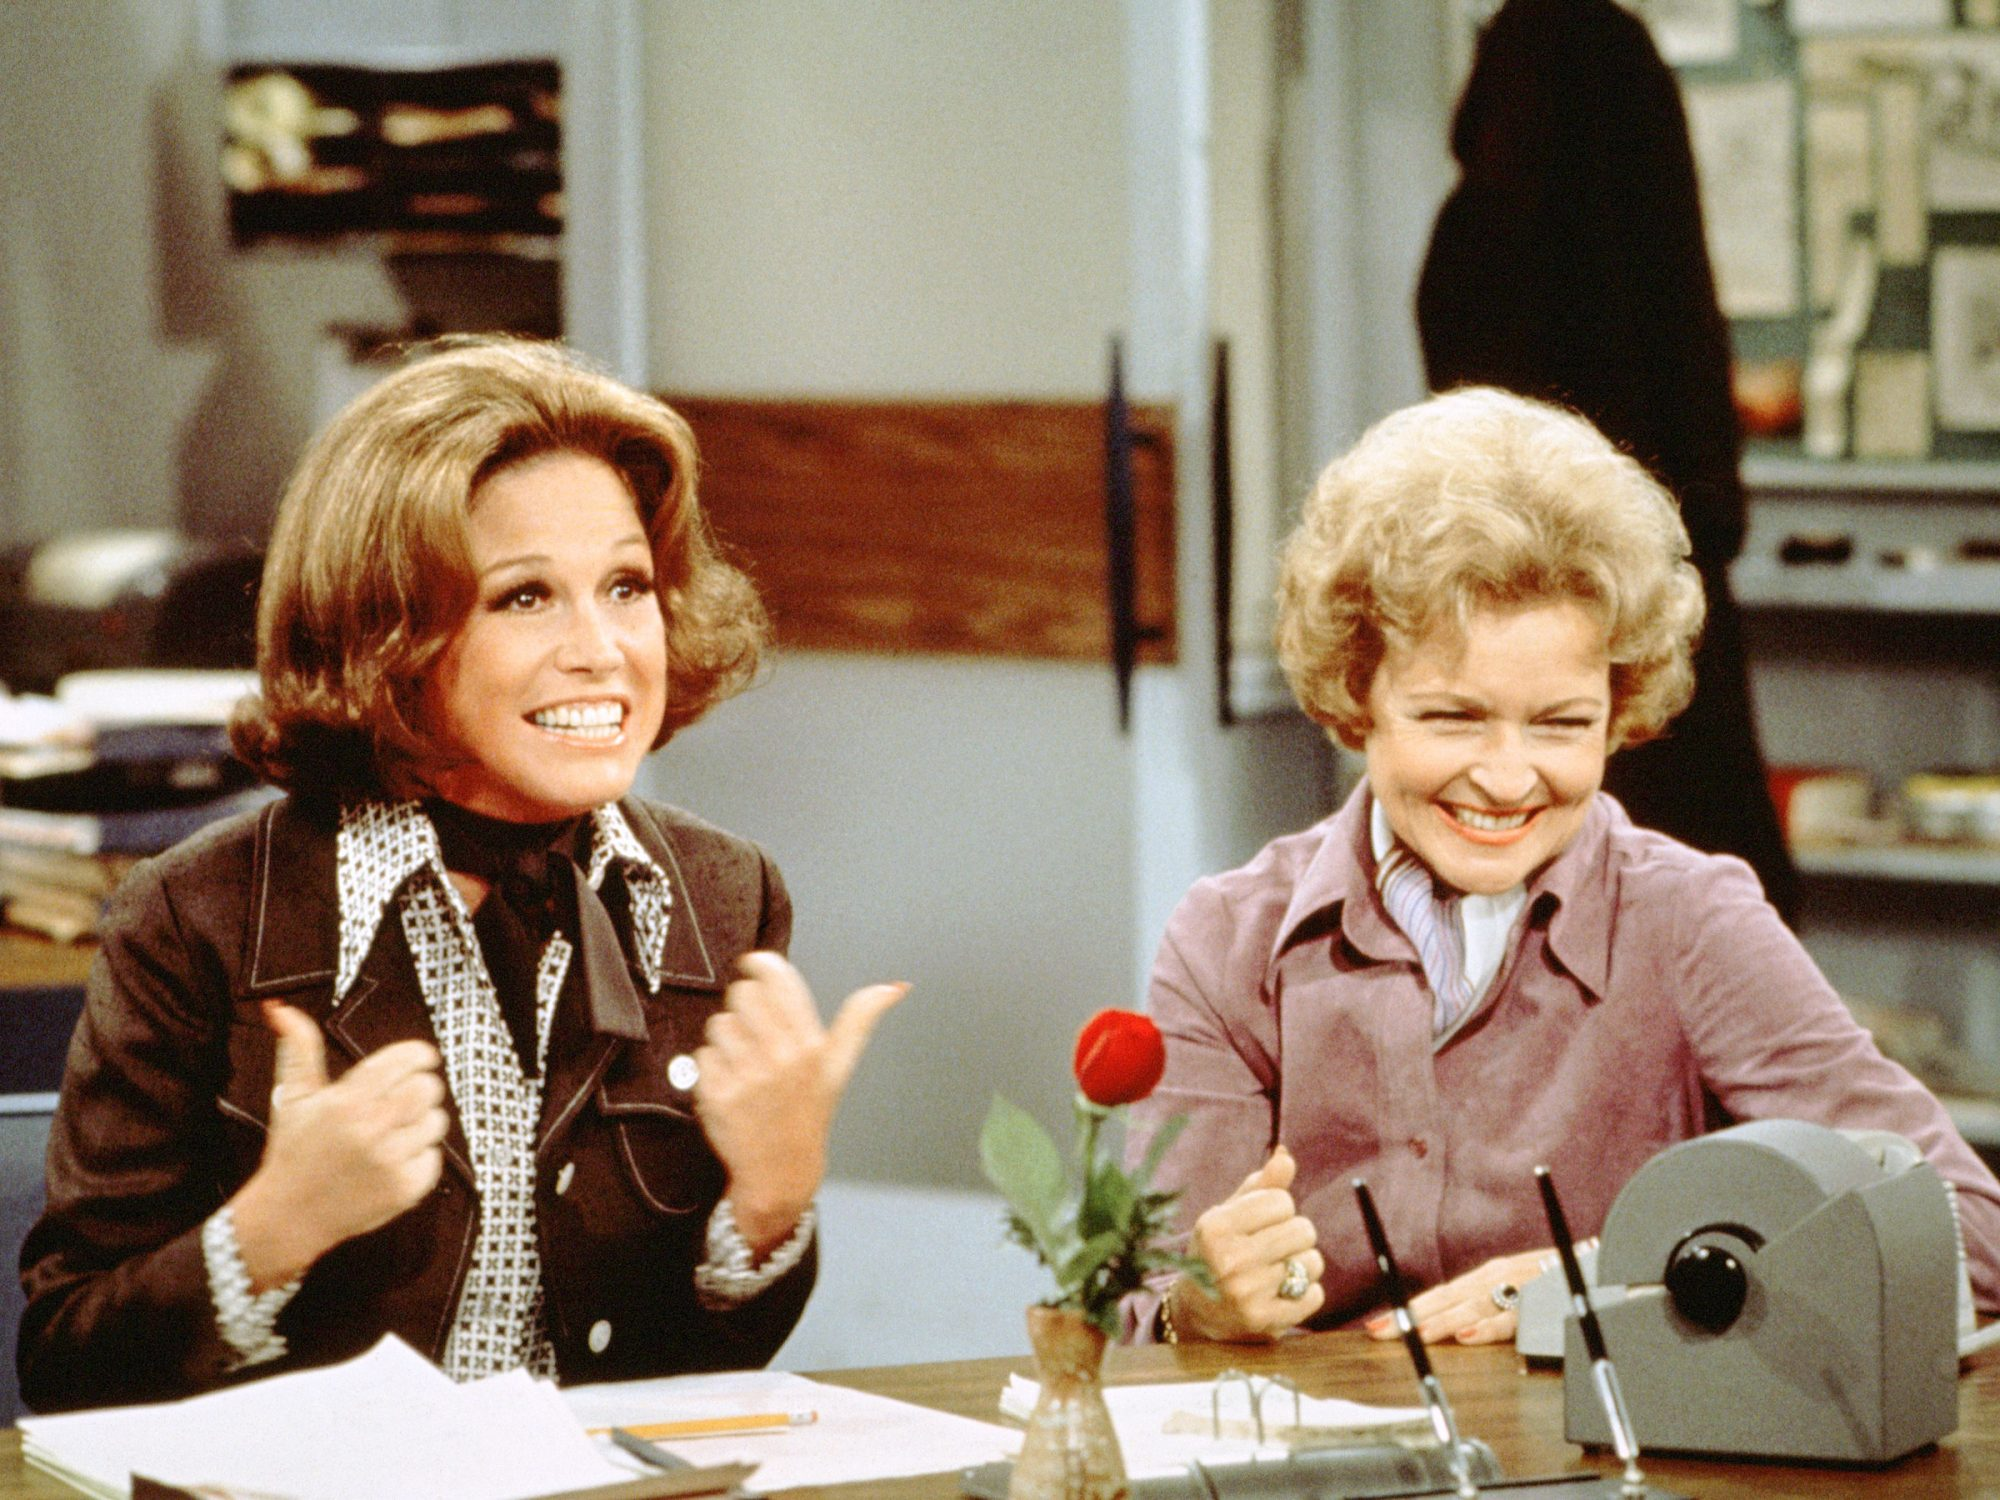 Moore & White In 'The Mary Tyler Moore Show""